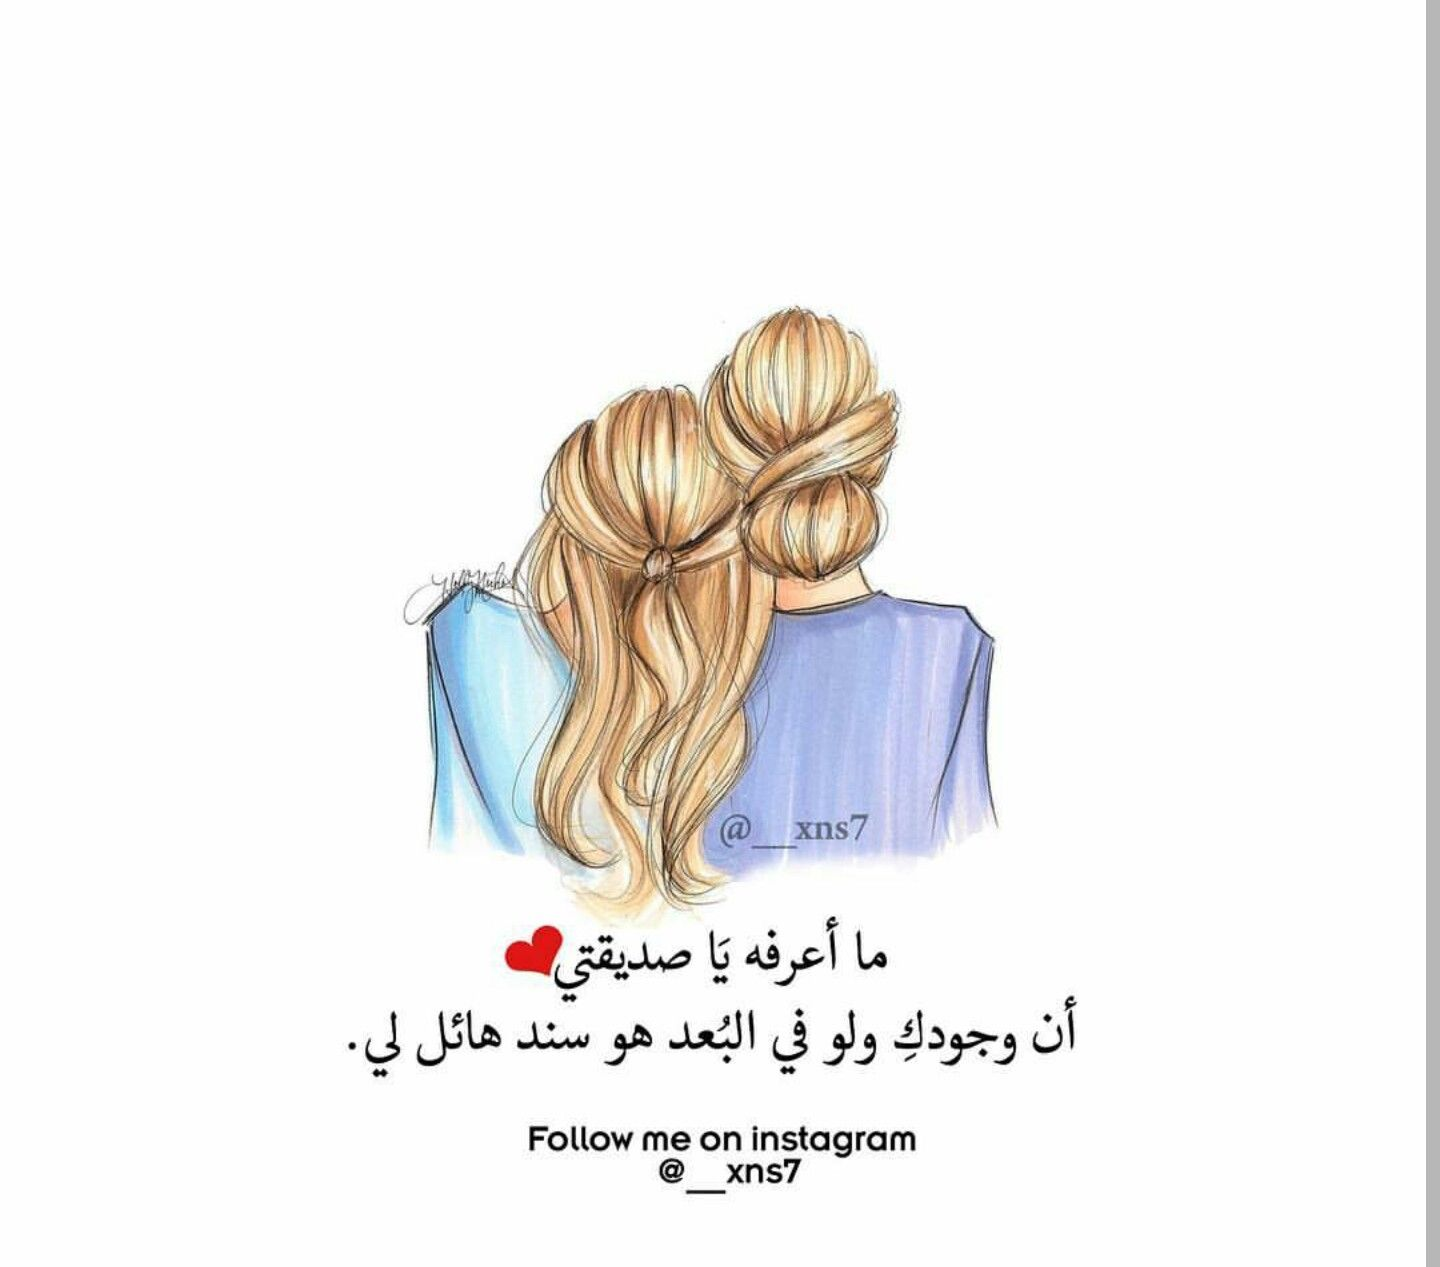 Pin By Ftoom On همسات لامست قلبي Birthday Girl Quotes Friends Quotes Beautiful Arabic Words